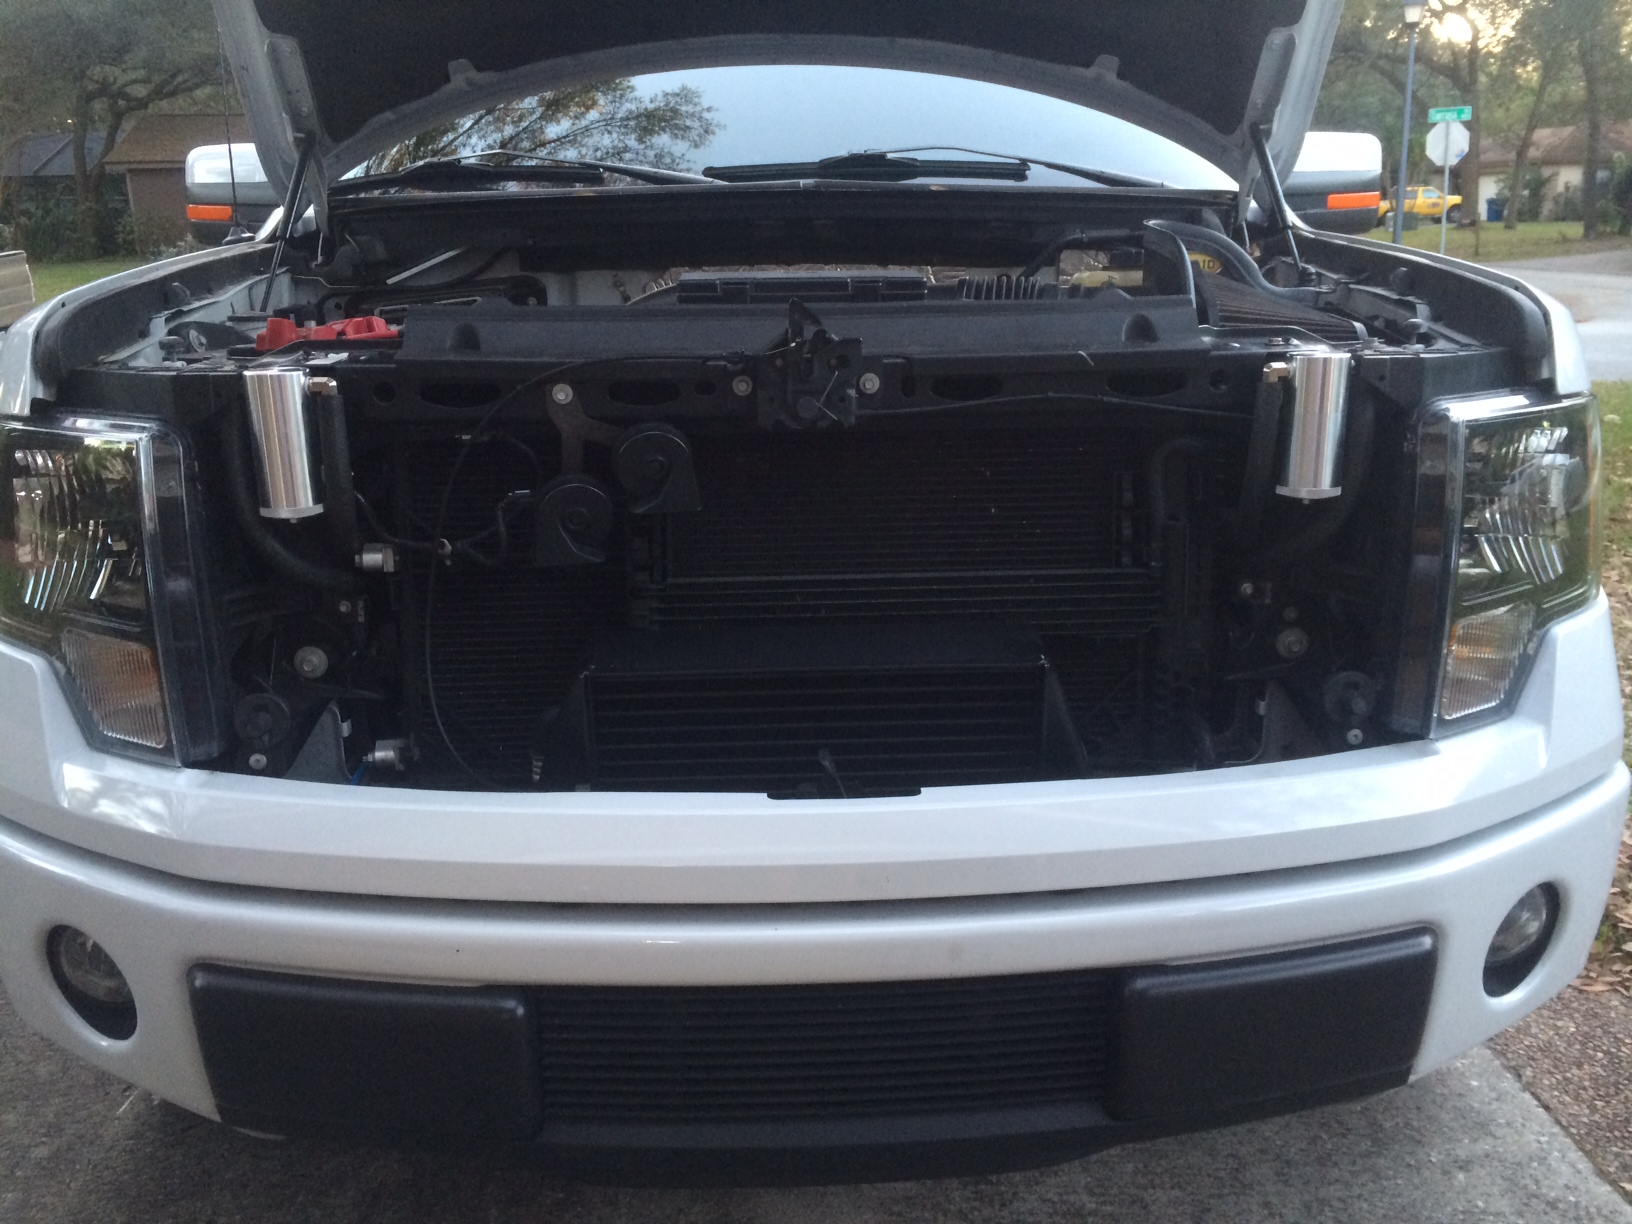 New to this forum so Im sharing some of my Ecoboost F150 build pics